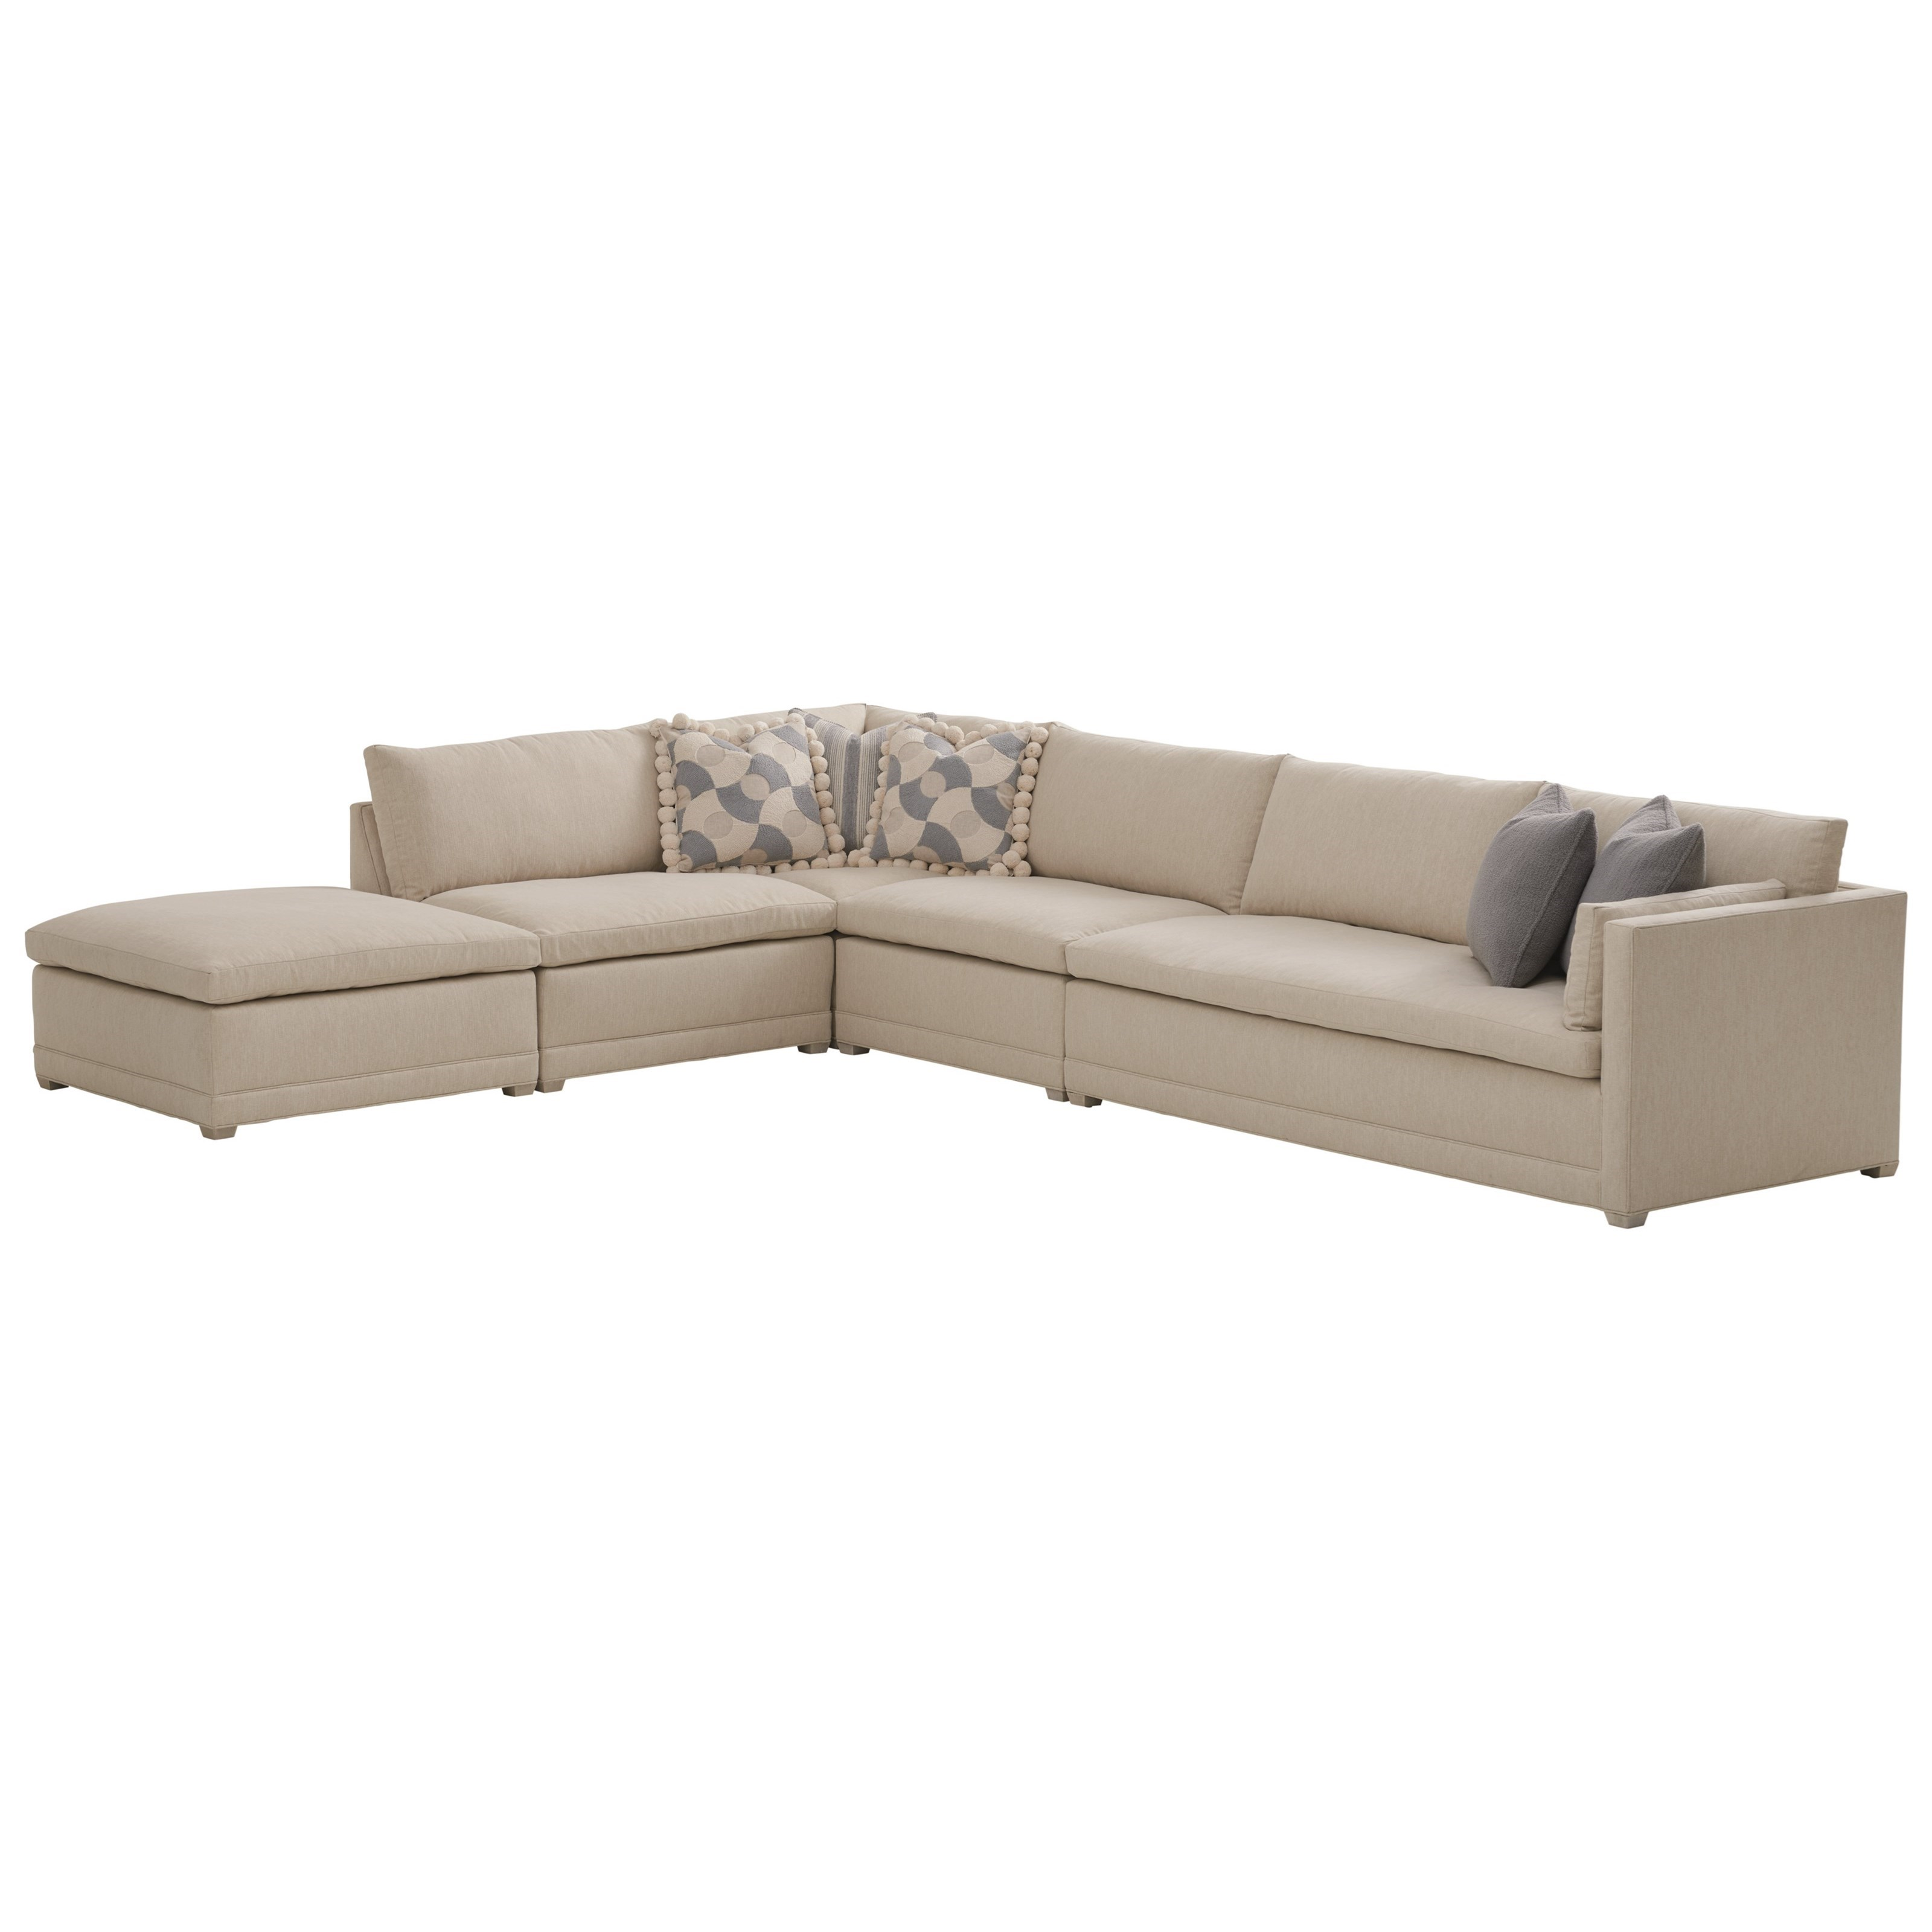 Barclay Butera Upholstery Colony Sectional by Barclay Butera at Baer's Furniture